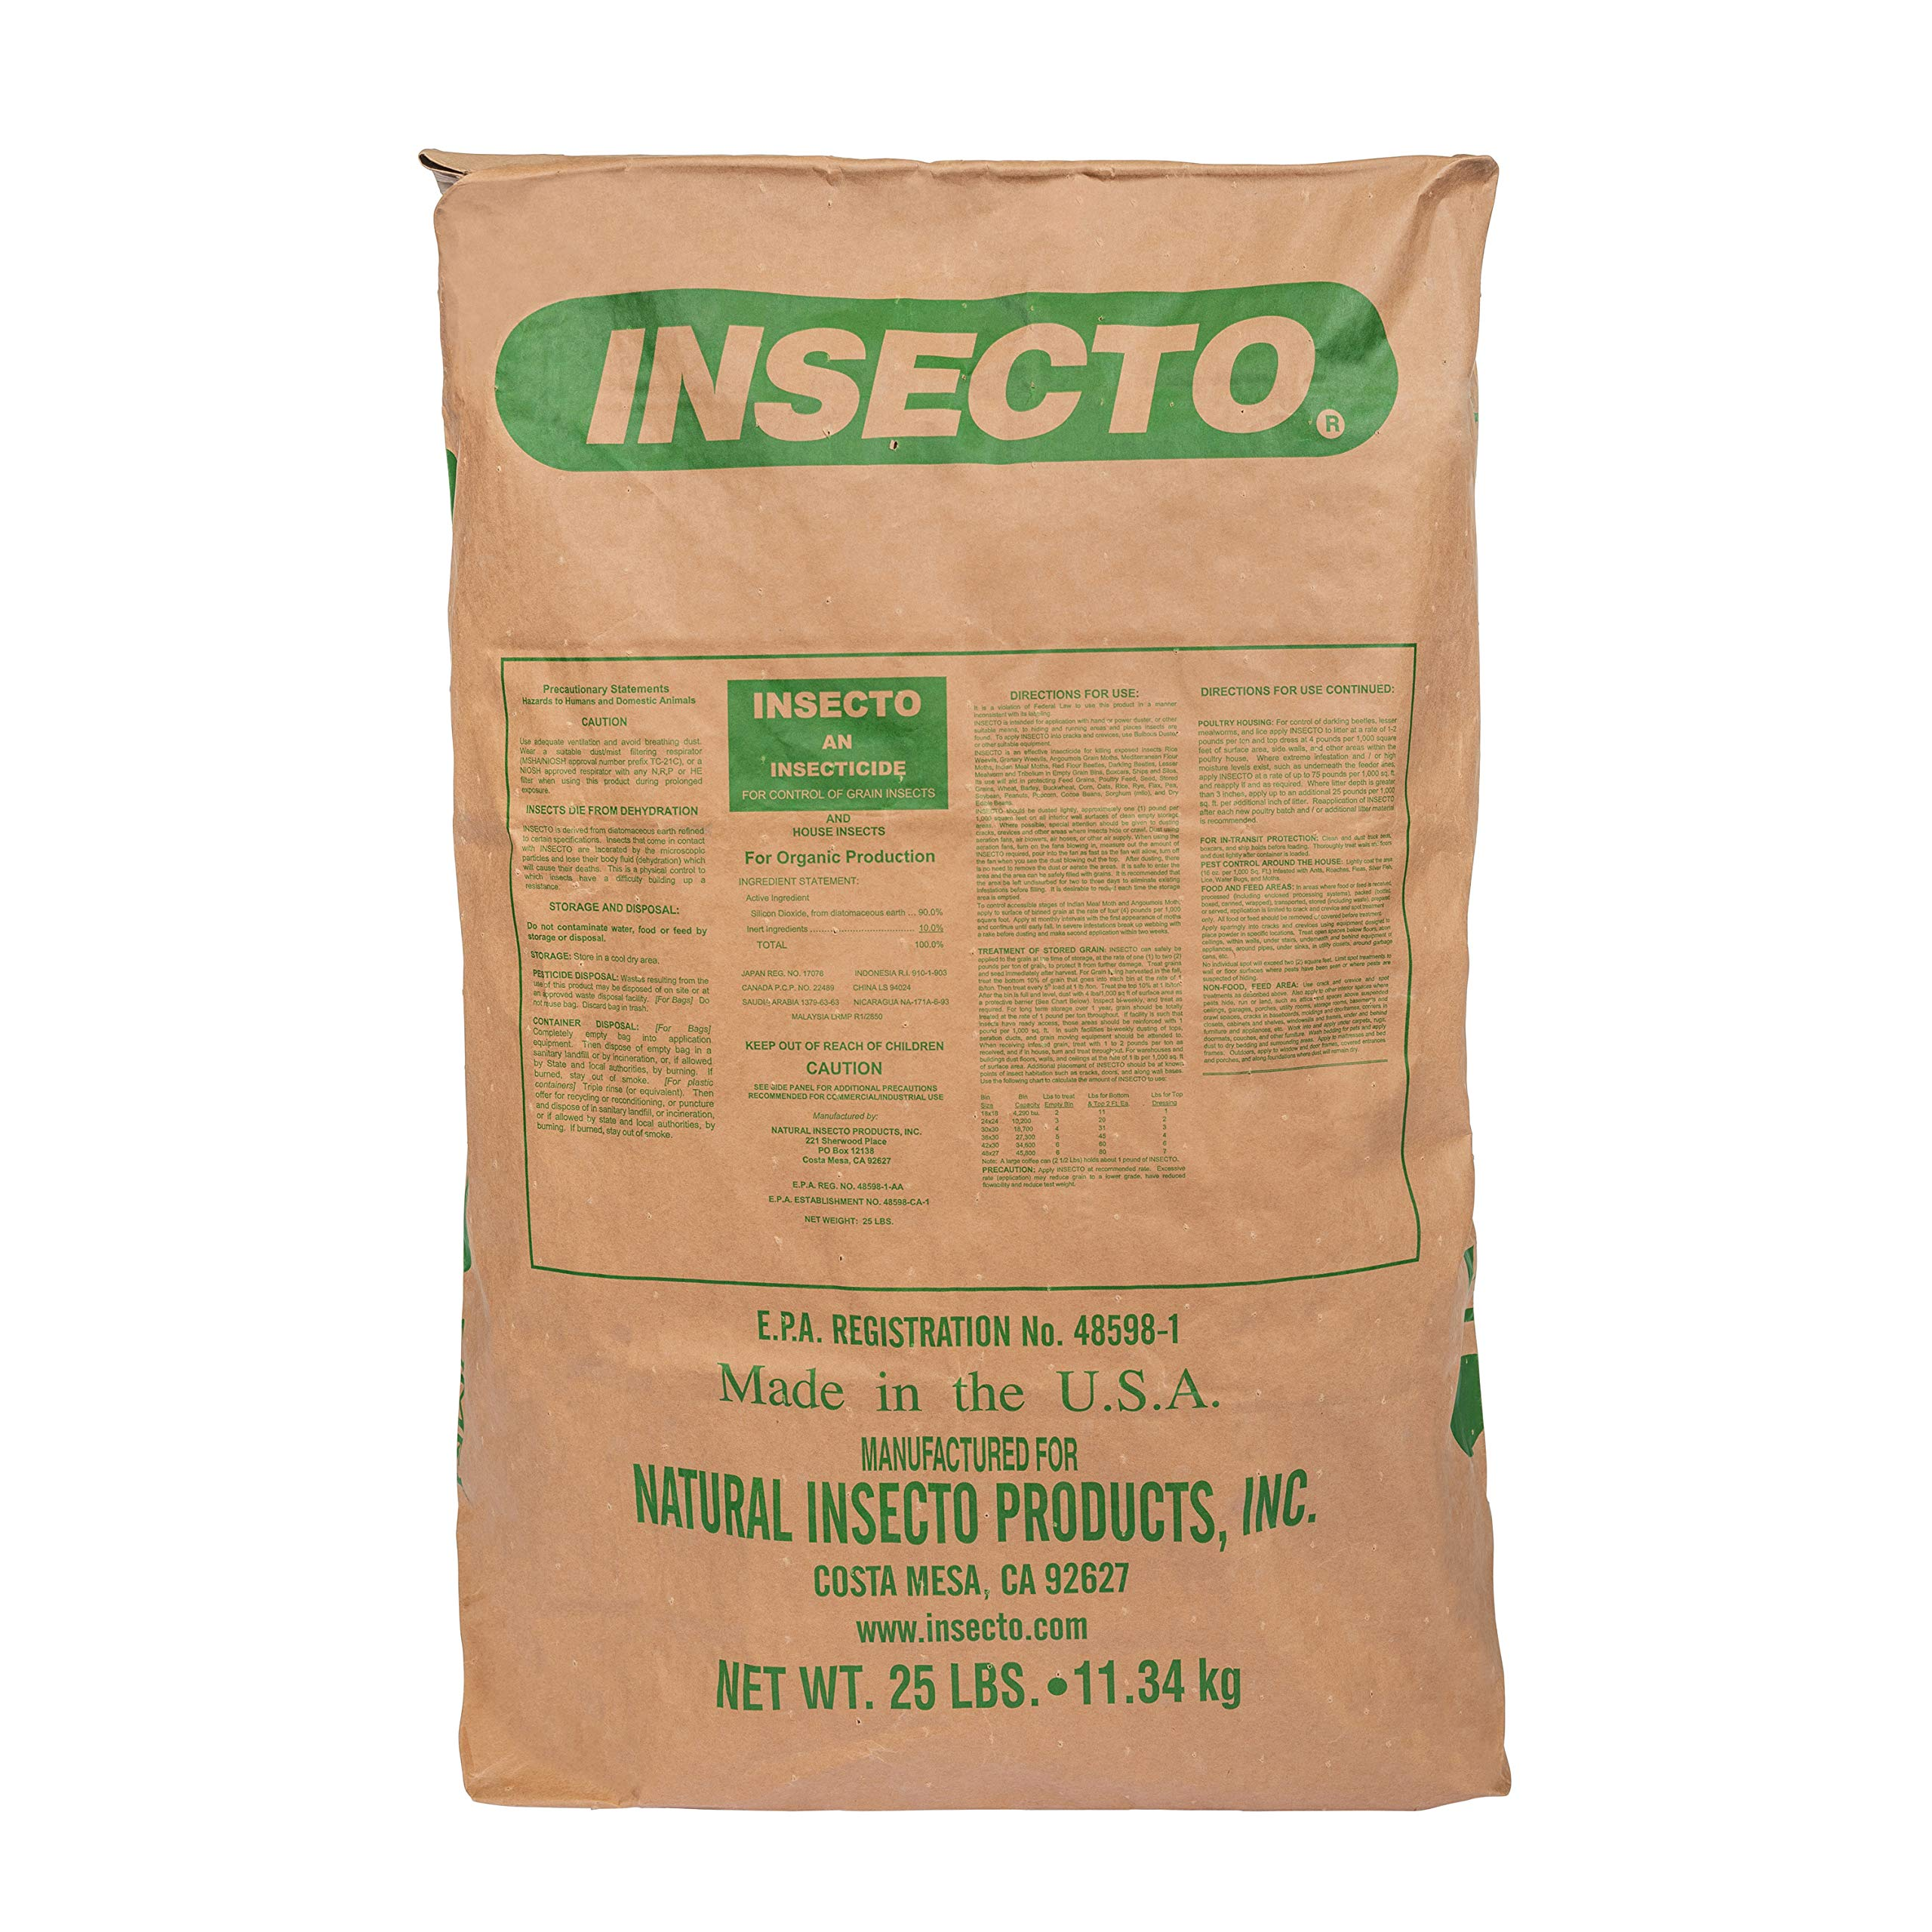 INSECTO Food Grade Diatomaceous Earth - 25 Lbs Bag The Commercial Pest Control Powder for Multipurpose Use on Grain Storage Livestock and Empty Bin Treatment.